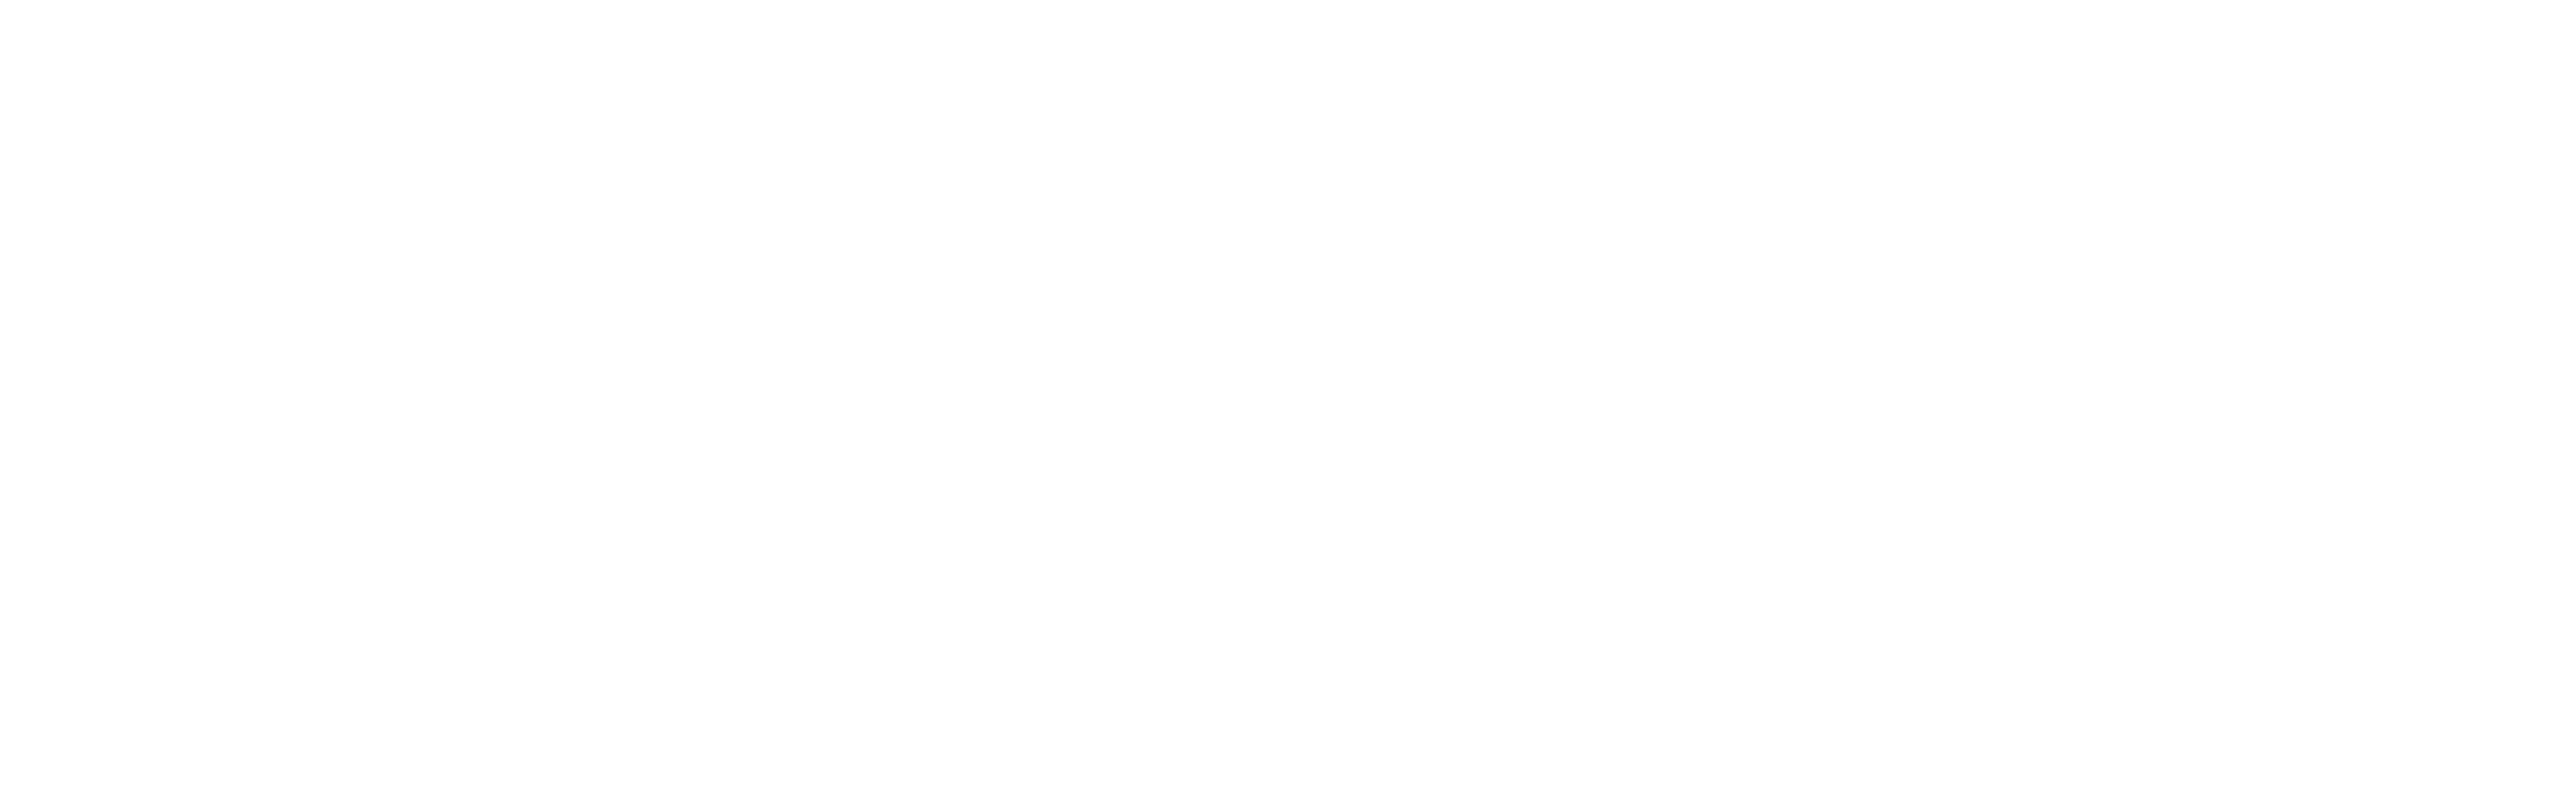 Consortia Training